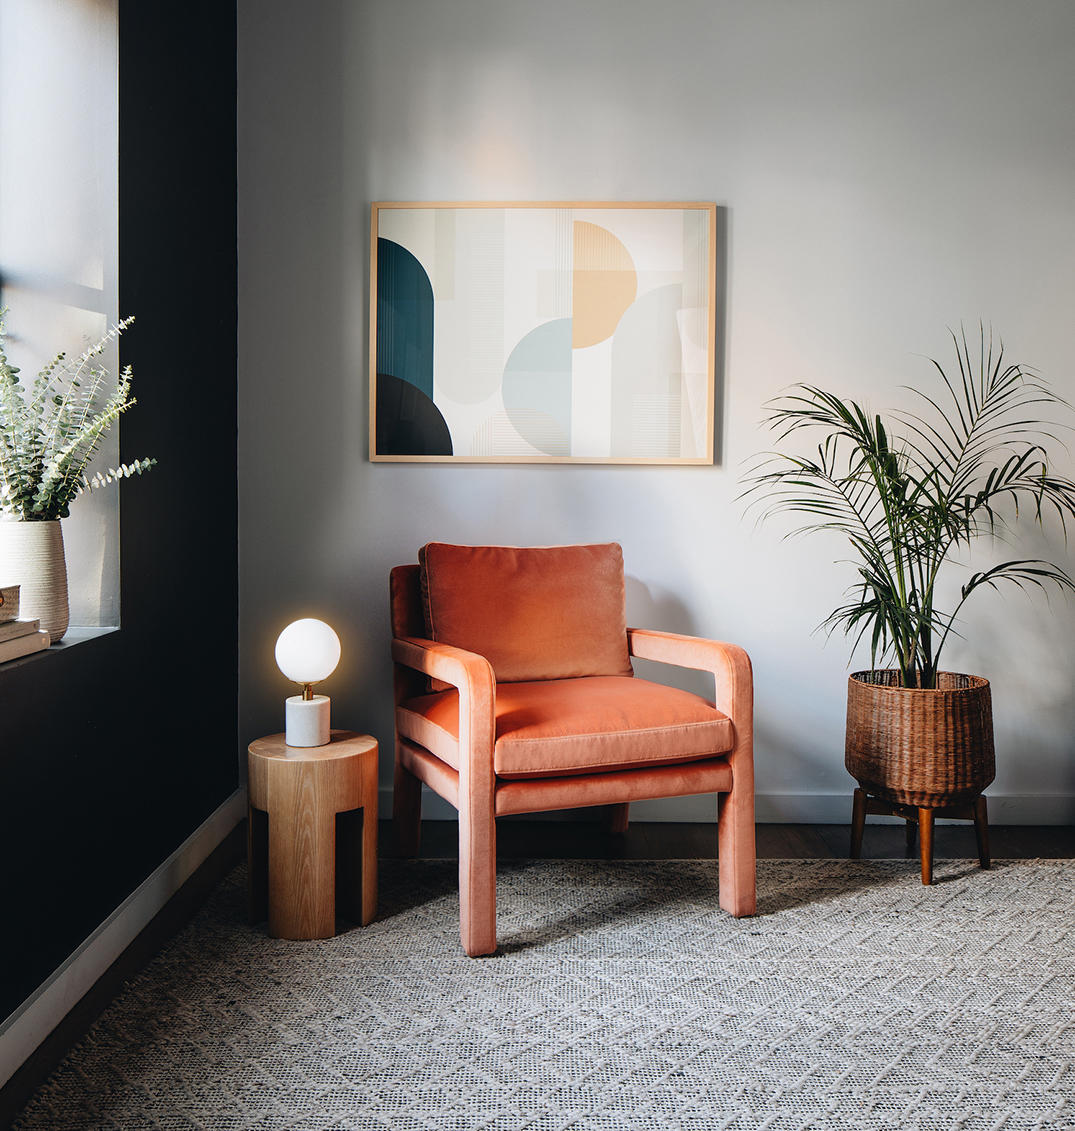 The Adler table lamp from Interior Define